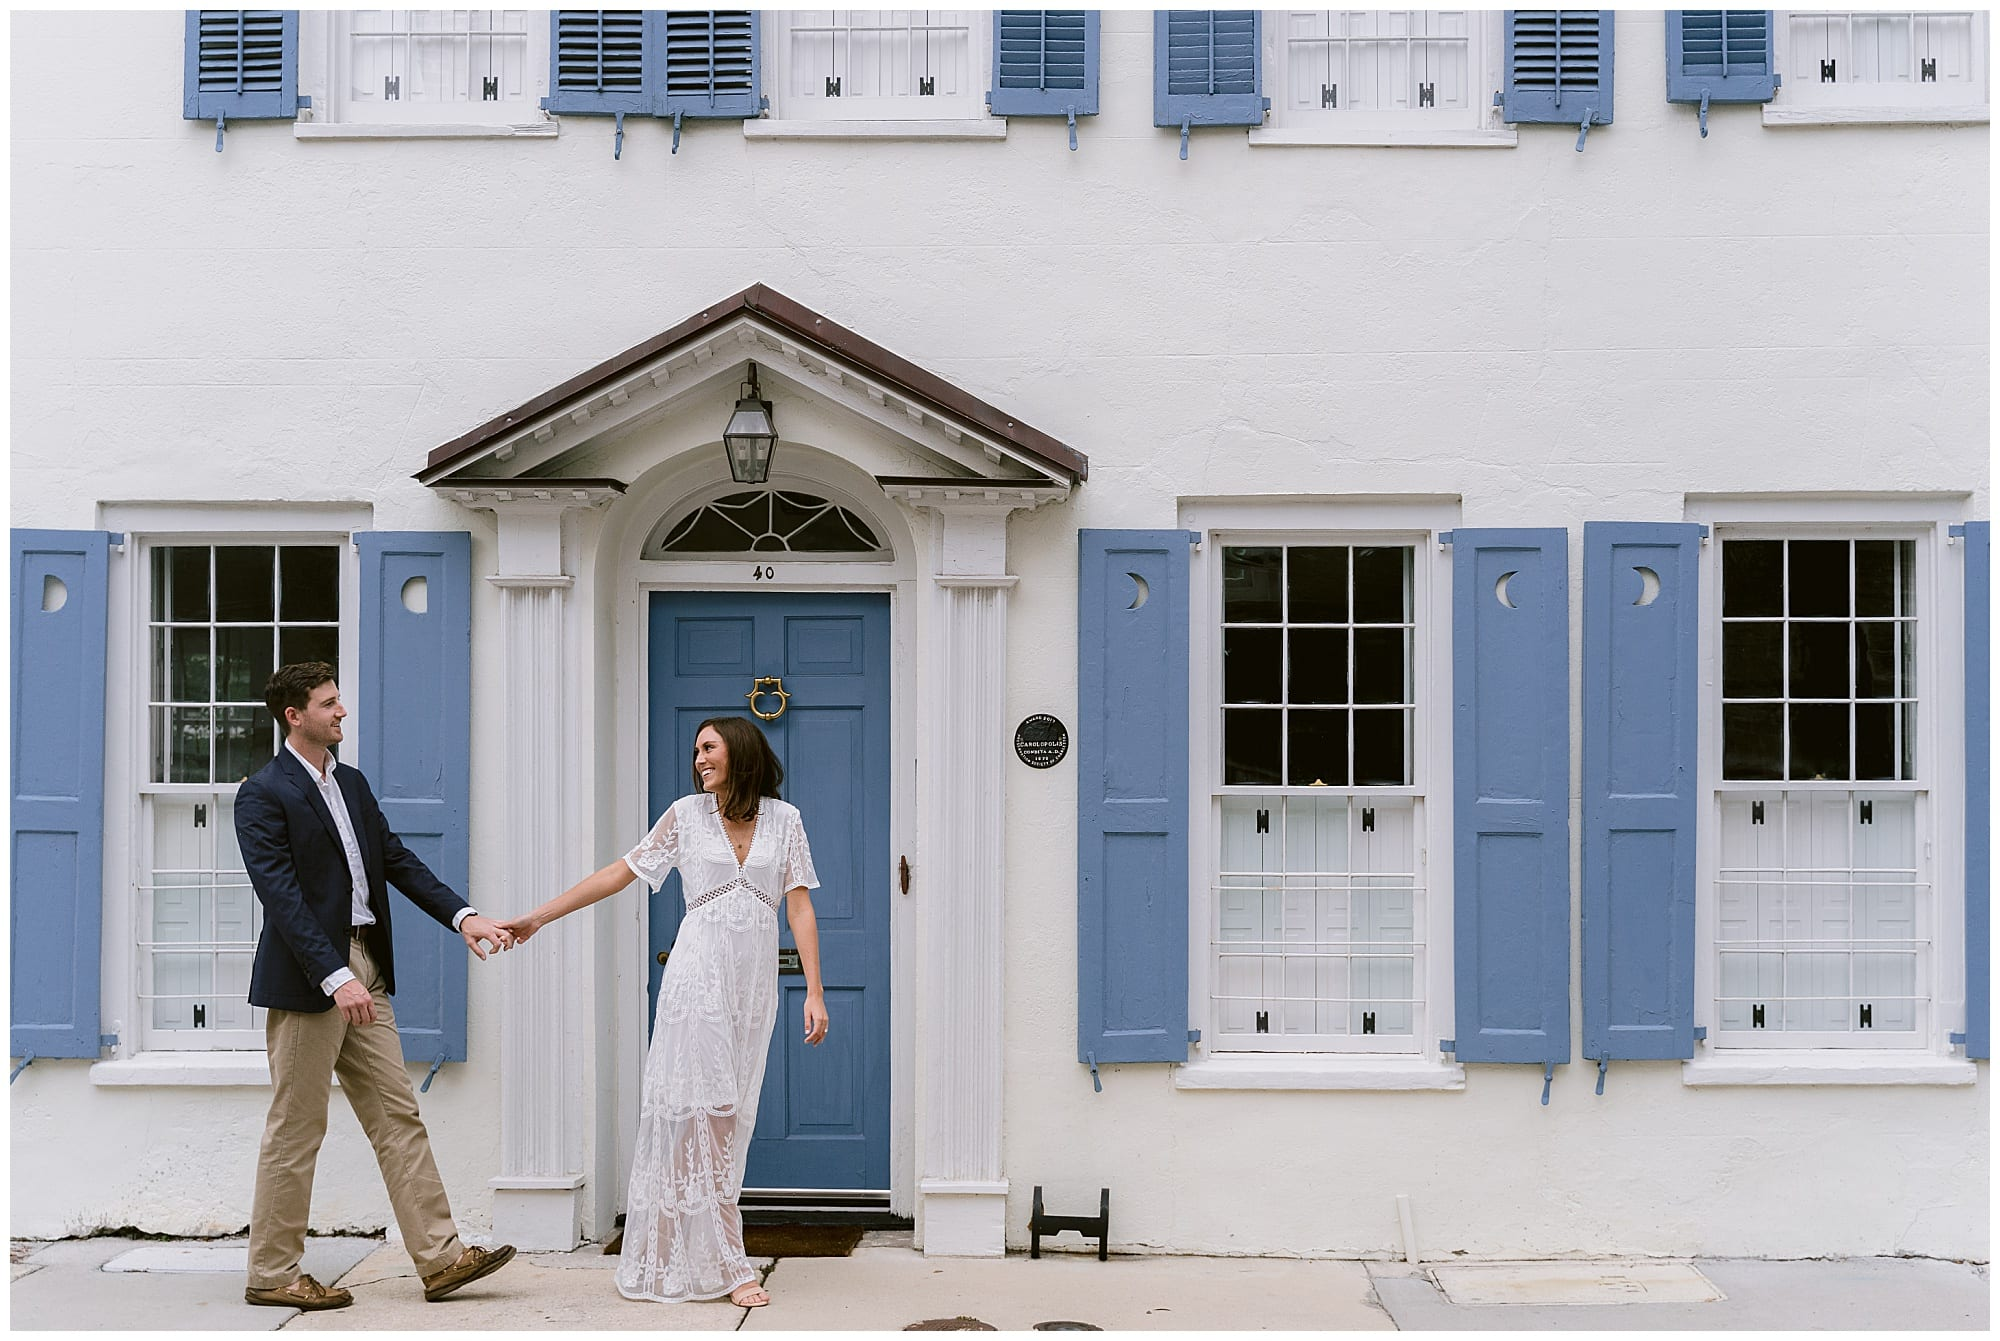 young engaged couple walking holding hands infront of white home with blue shutters in downtown charleston